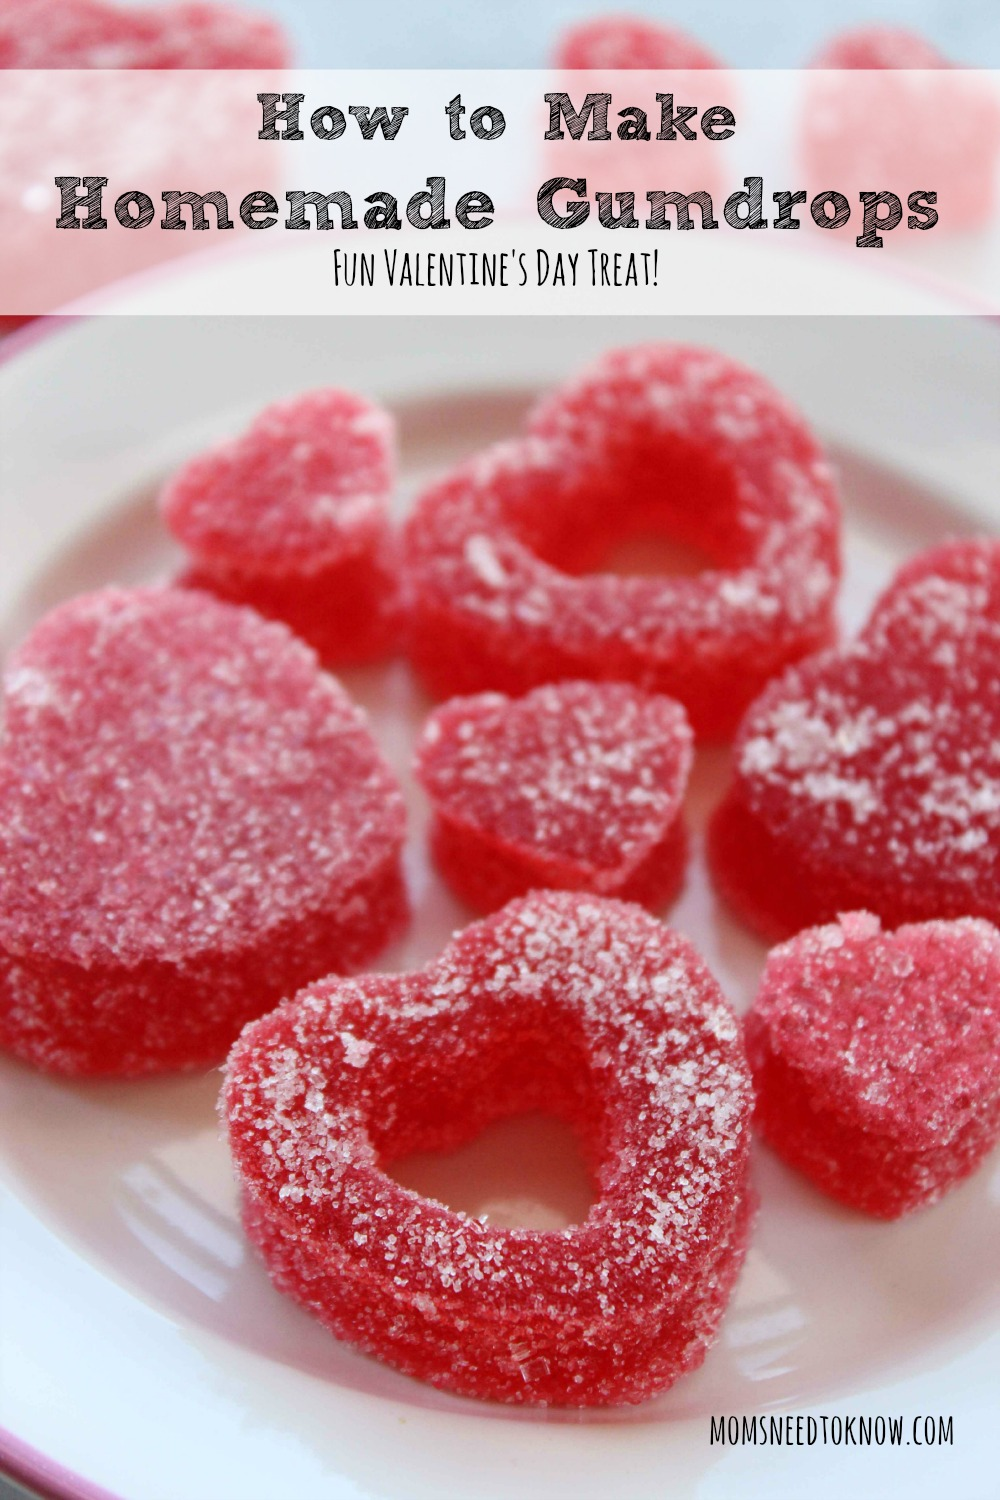 How To Make Homemade Gumdrops